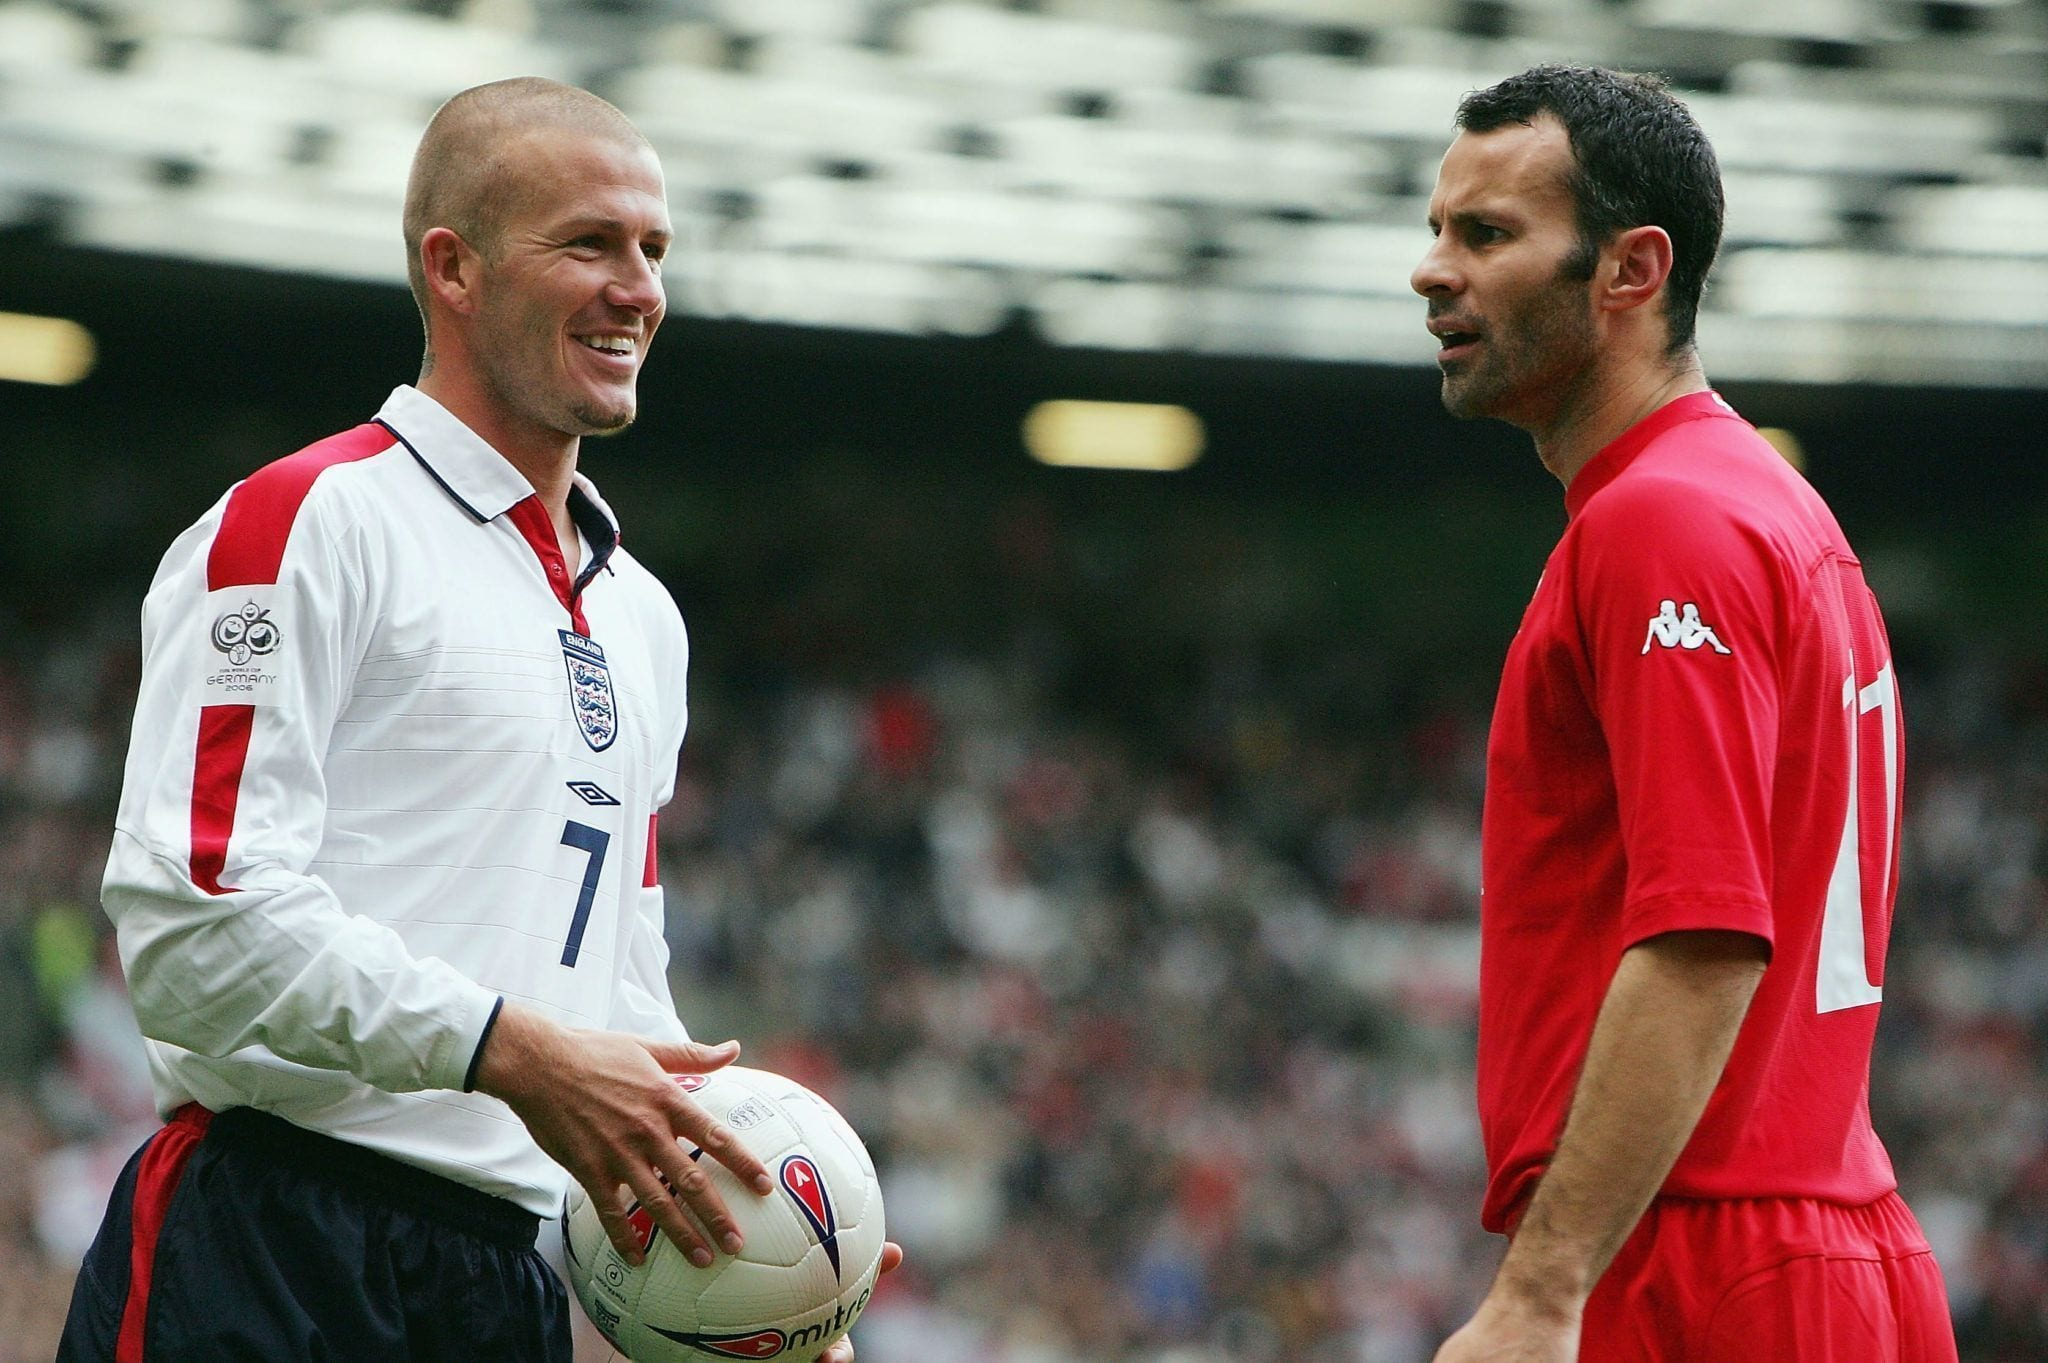 MANCHESTER, ENGLAND - OCTOBER 9:  David Beckham of England and Ryan Giggs of Wales share an exchange during the 2006 World Cup Qualifying match between England and Wales at Old Trafford, on October 9, 2004 in Manchester, England.  (Photo by Laurence Griffiths/Getty Images)